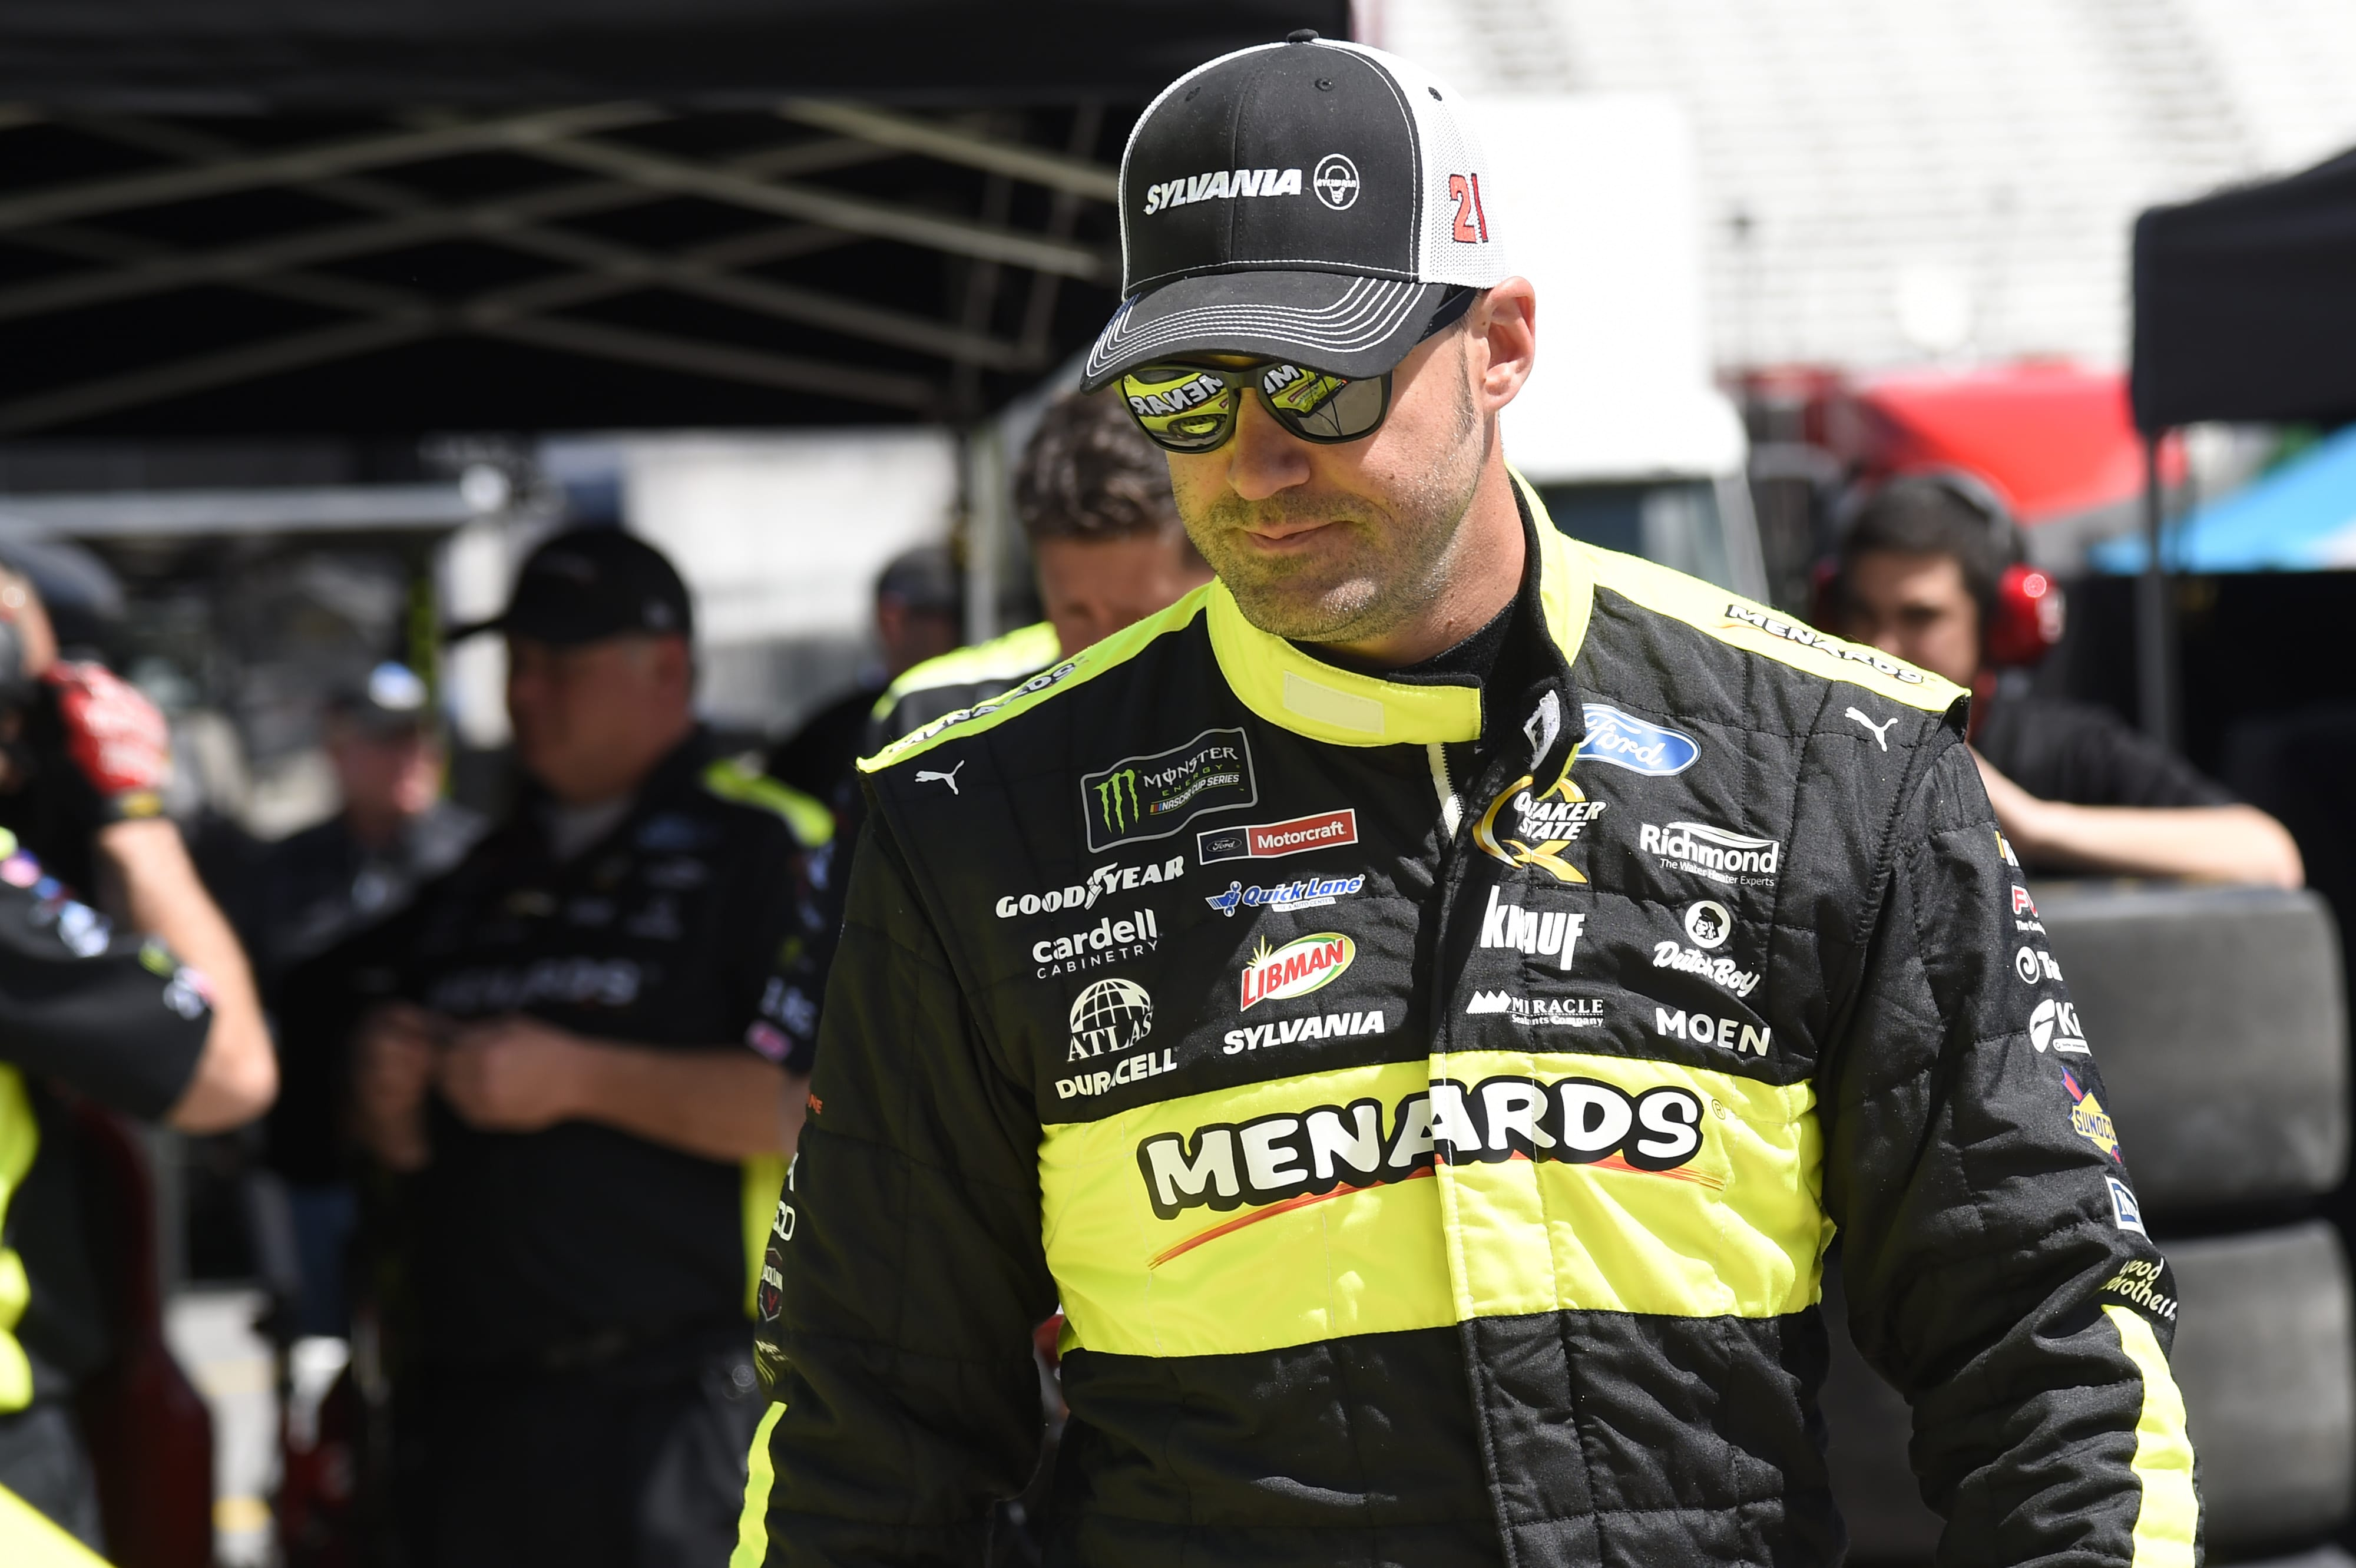 Paul Menard to Retire from Full-Time Cup Series Racing After 2019 Season - Wood Brothers